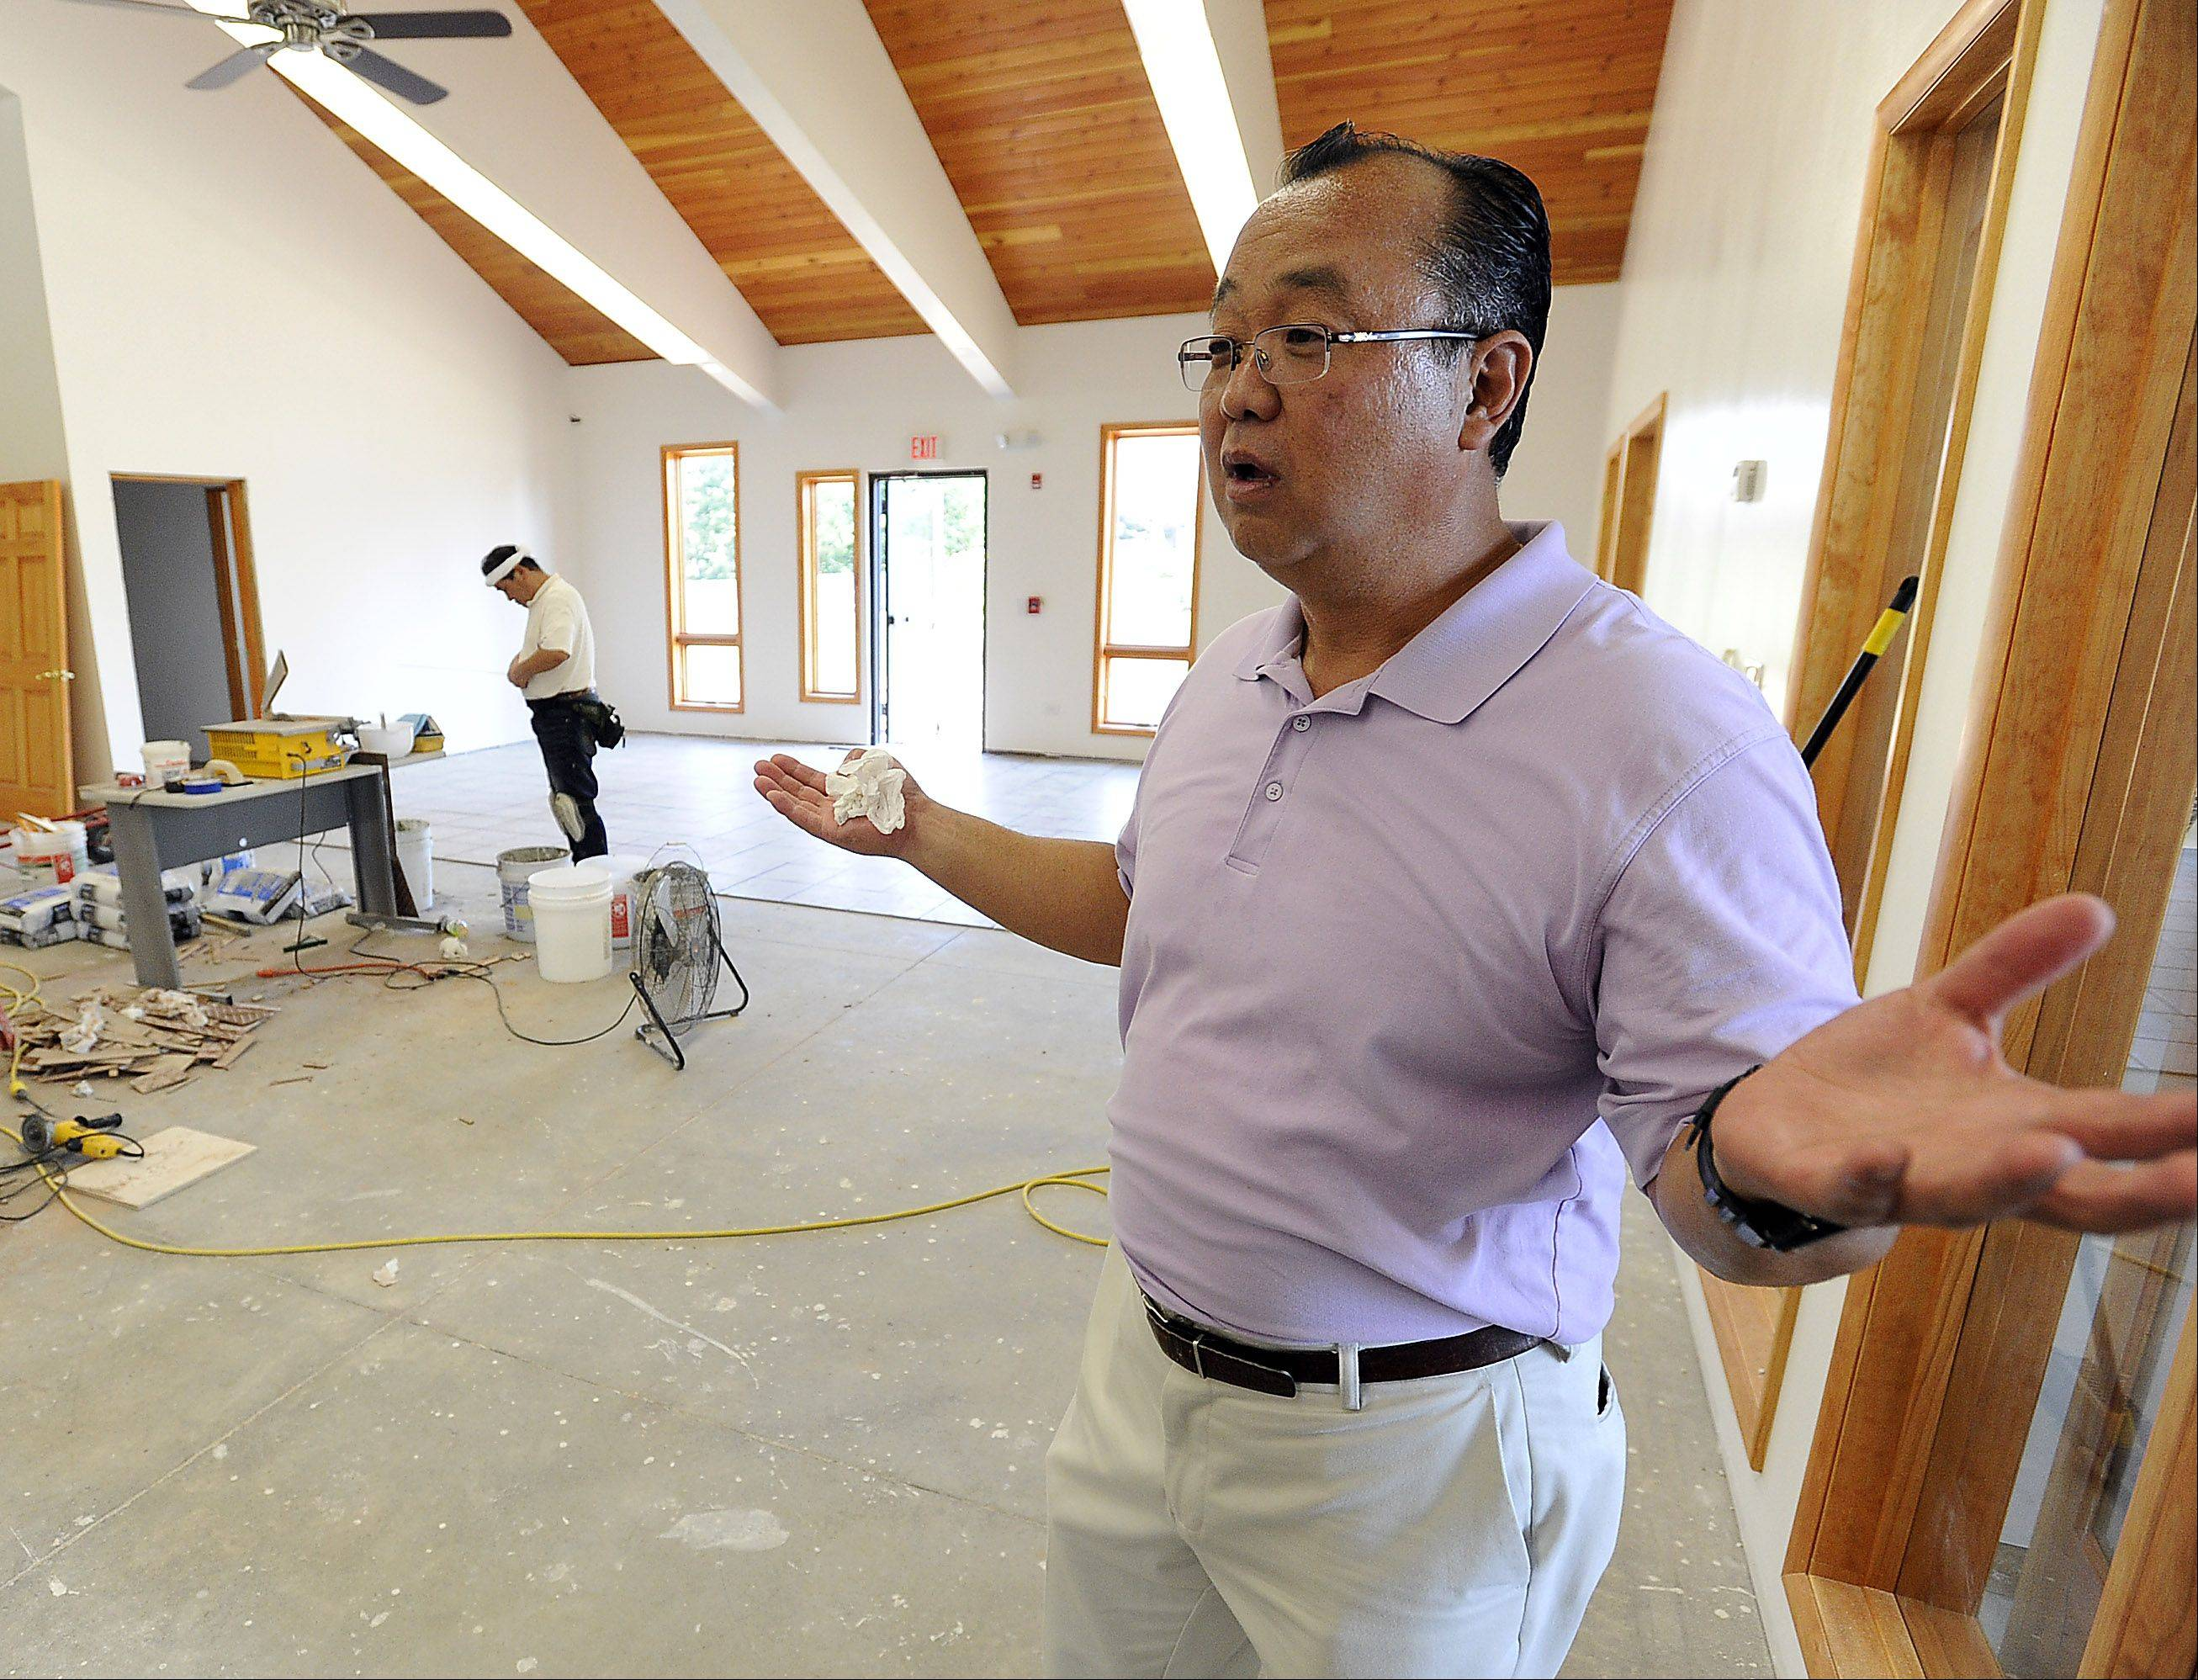 The Rev. Yugo Kobari hopes the Chicago Japanese Mission Church in Arlington Heights will be finished in time for Christmas service. Kobari said the church is about 70 percent complete thanks to volunteers from the suburbs, states as far away as Colorado and Arkansas, and even one builder from Japan.